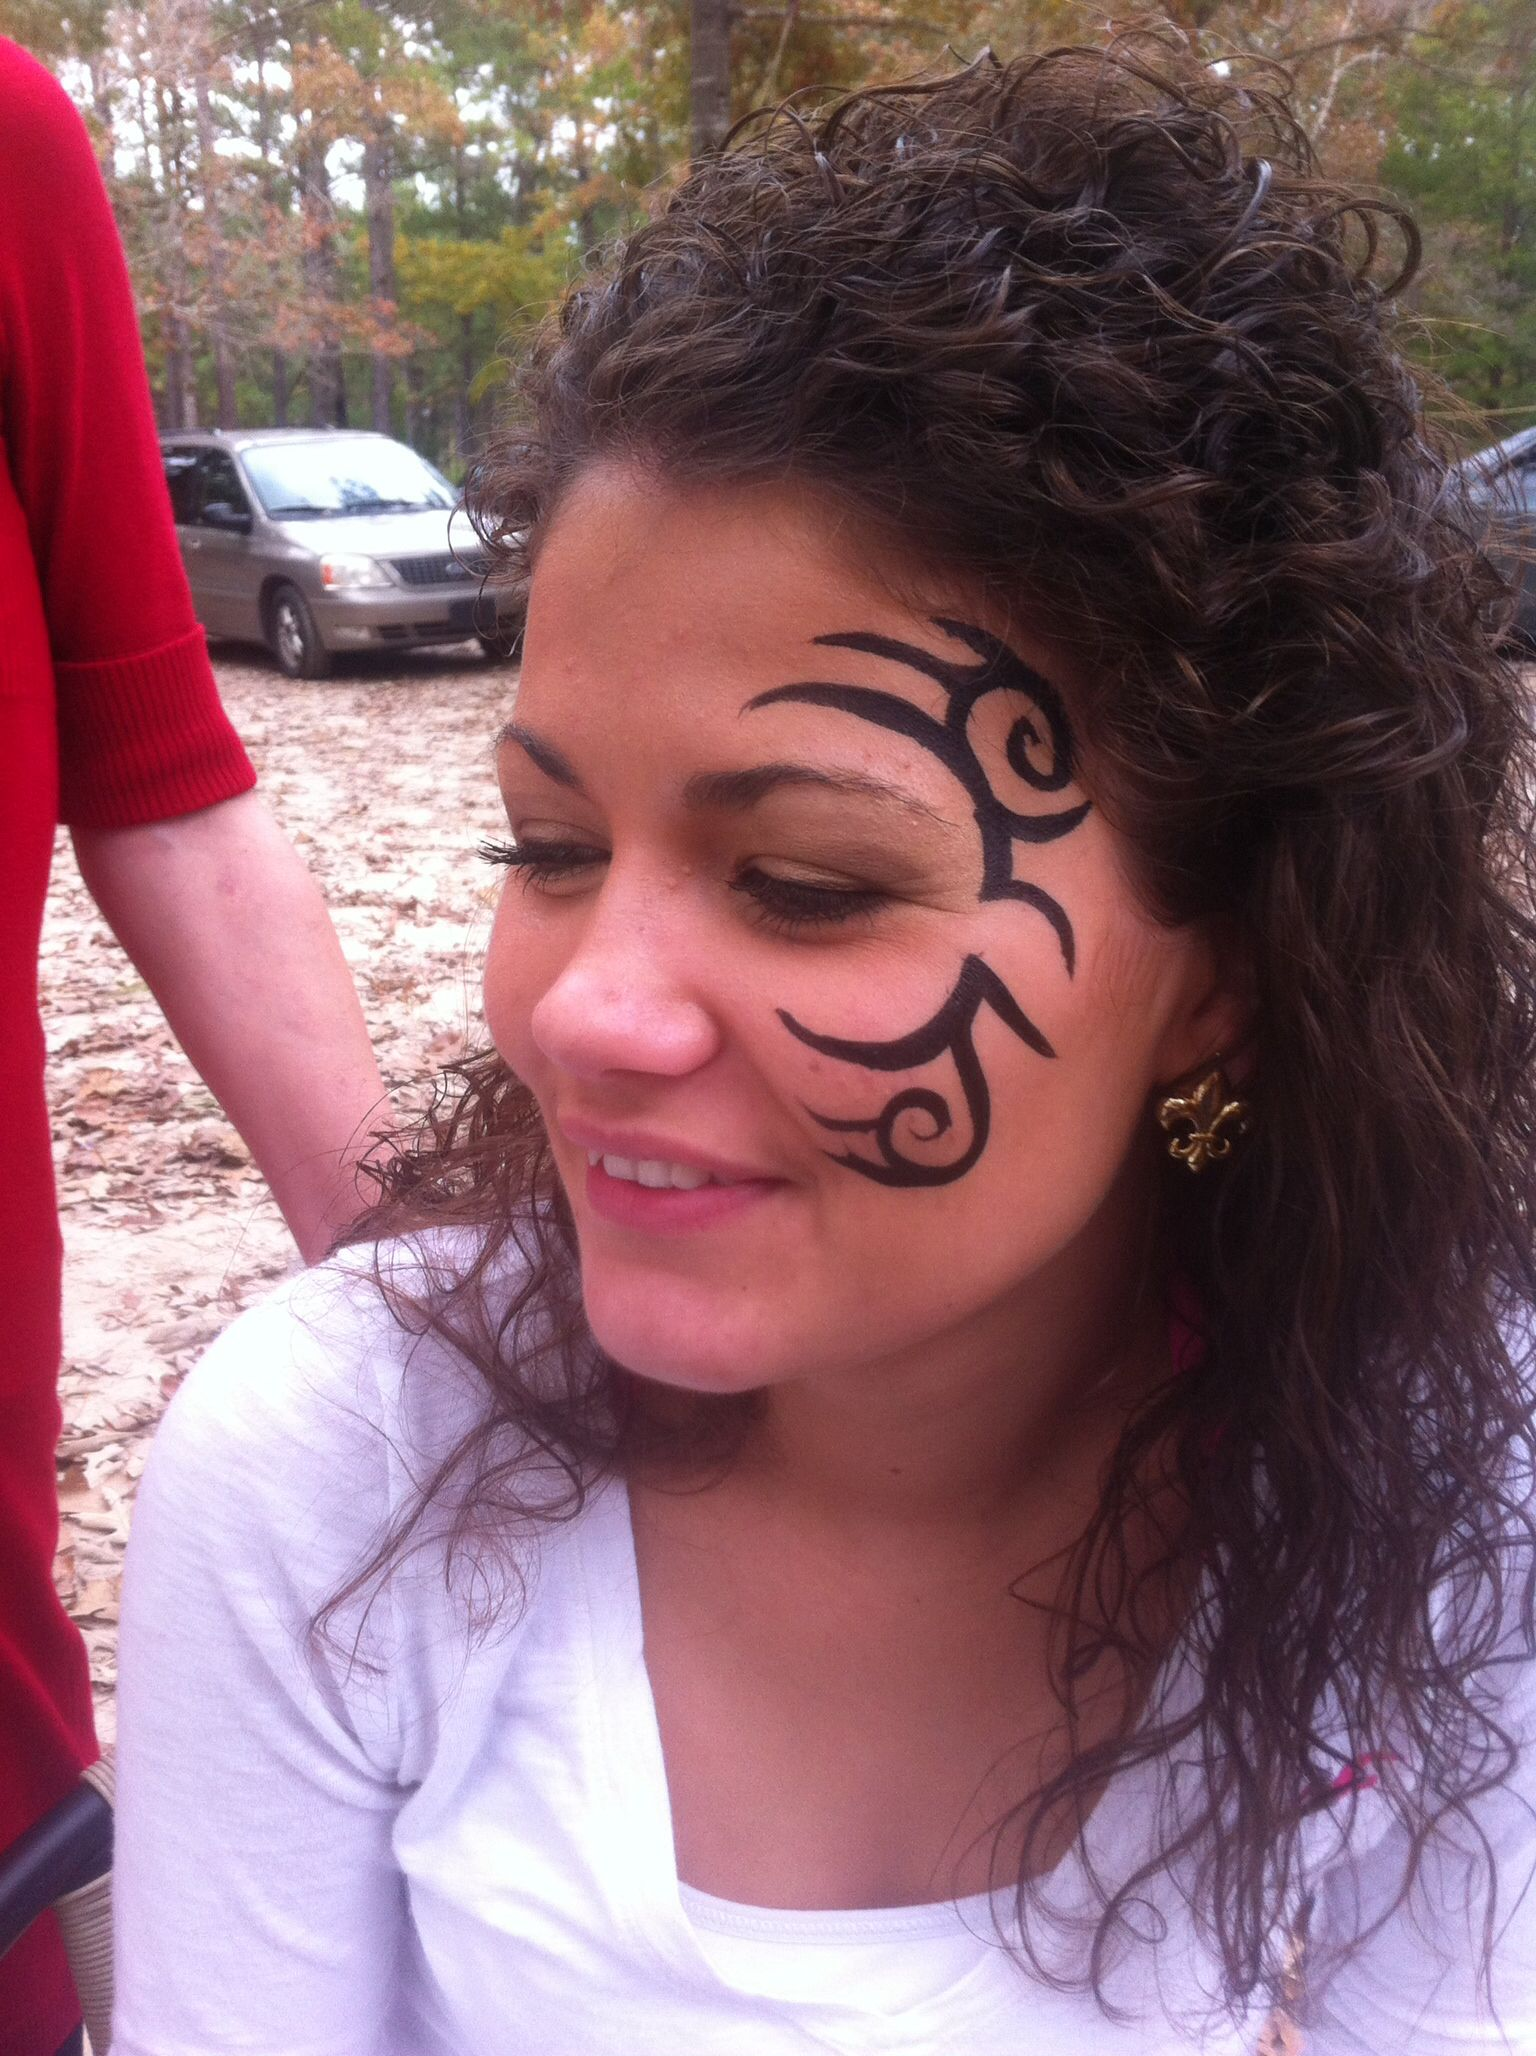 838ae2127 Tribal mike Tyson.   face painting   Face, Painting, Mike Tyson